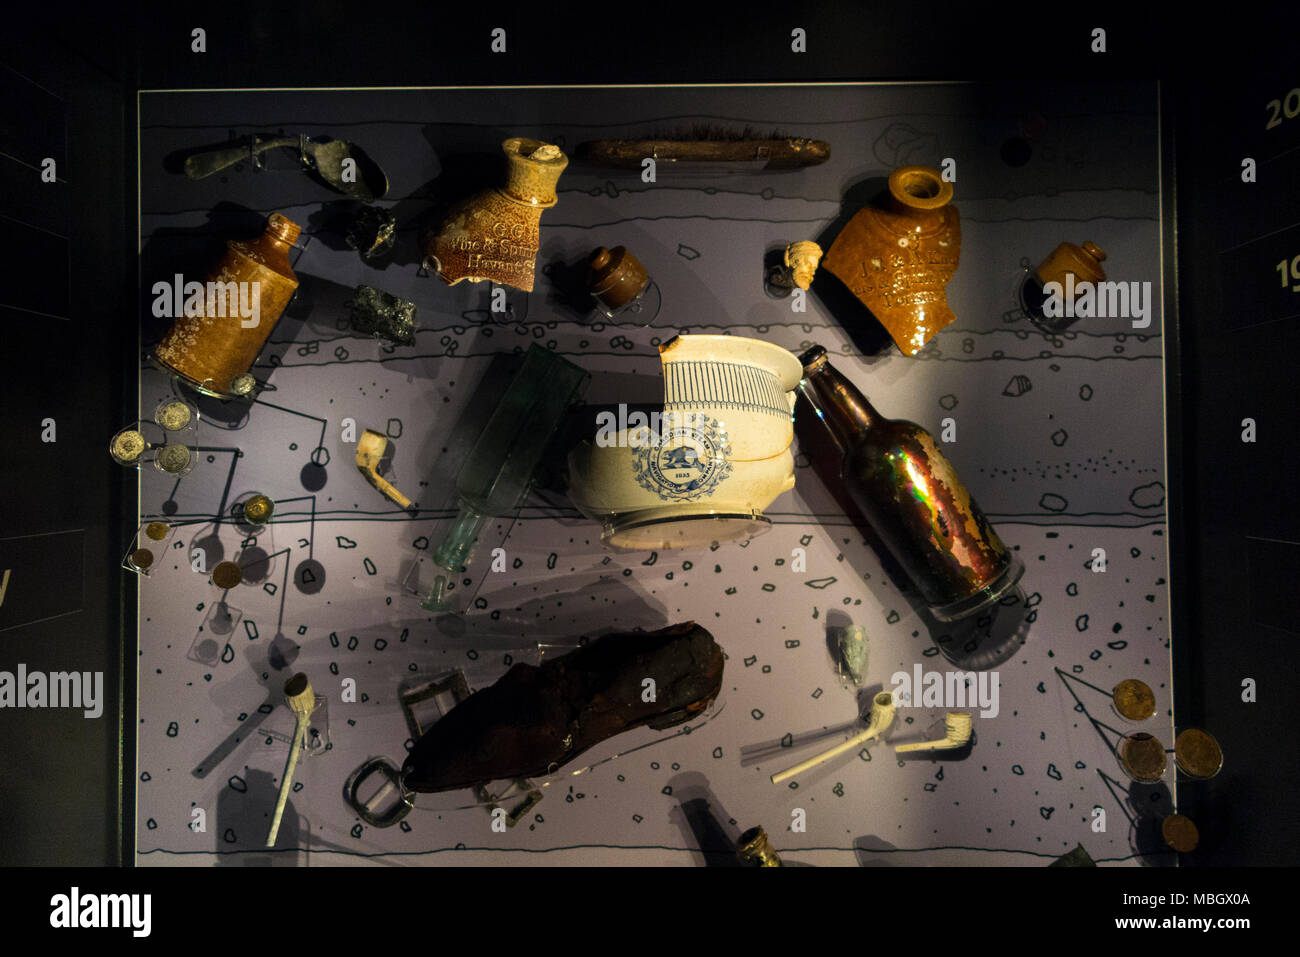 Remains & miscellaneous artefacts found about wreck of The Mary Rose, though not from the wreck and from different eras. The Mary Rose Museum, Portsmouth historic dockyard UK - Stock Image